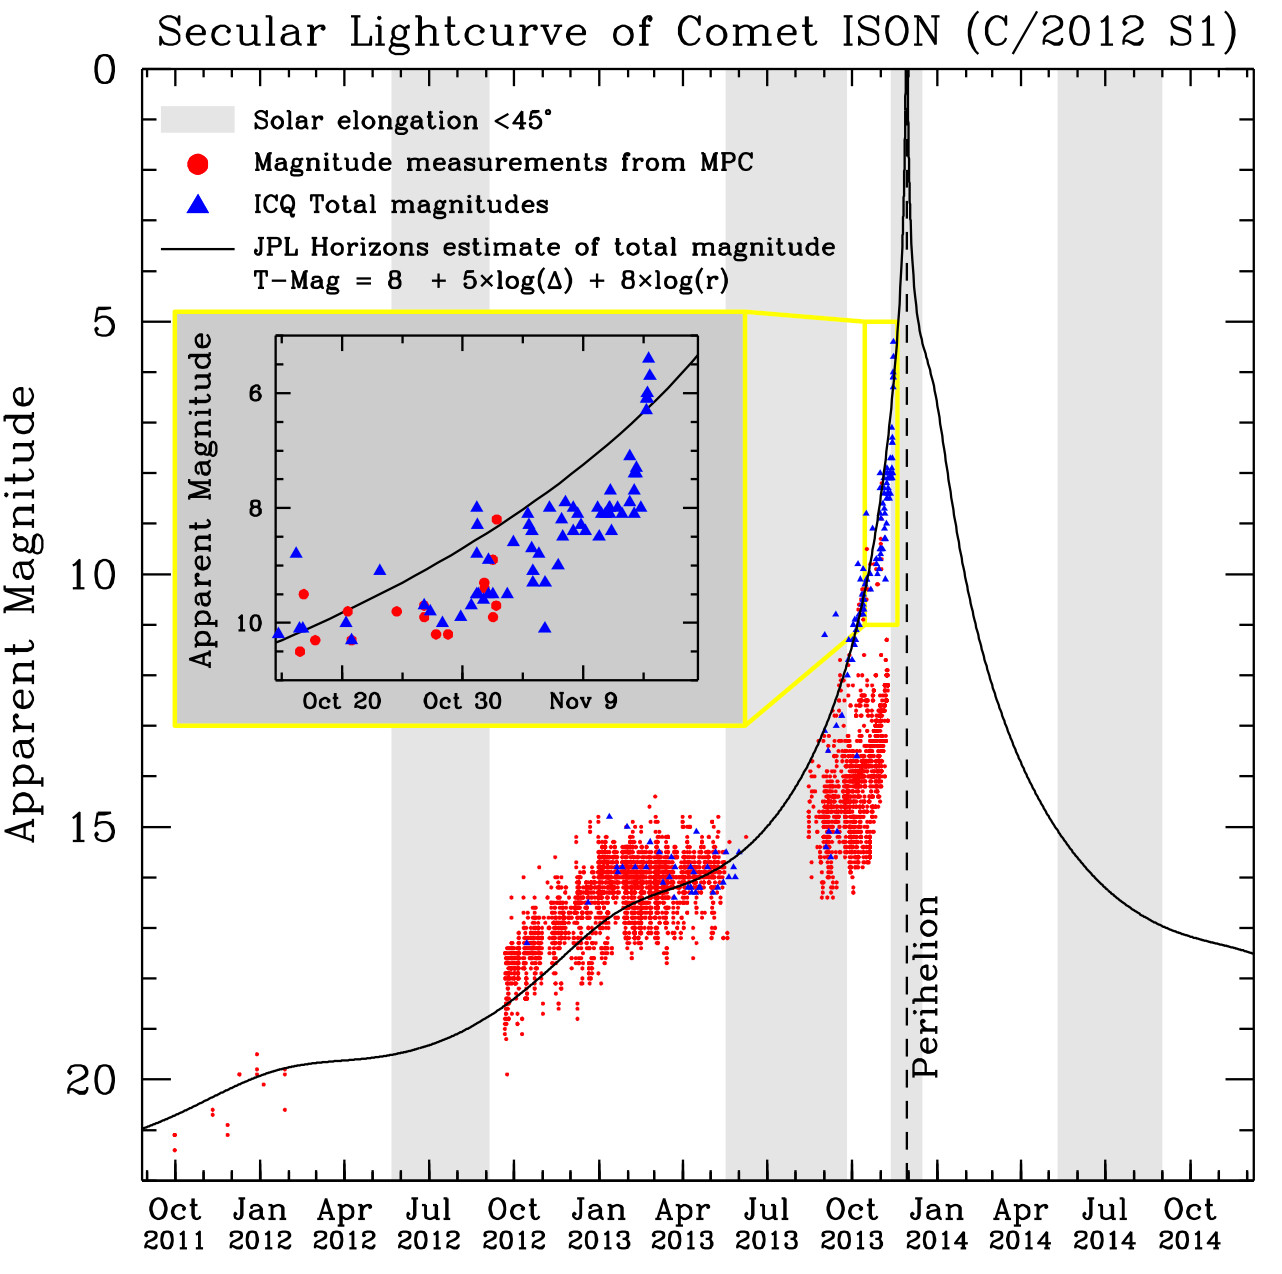 ison_lightcurve